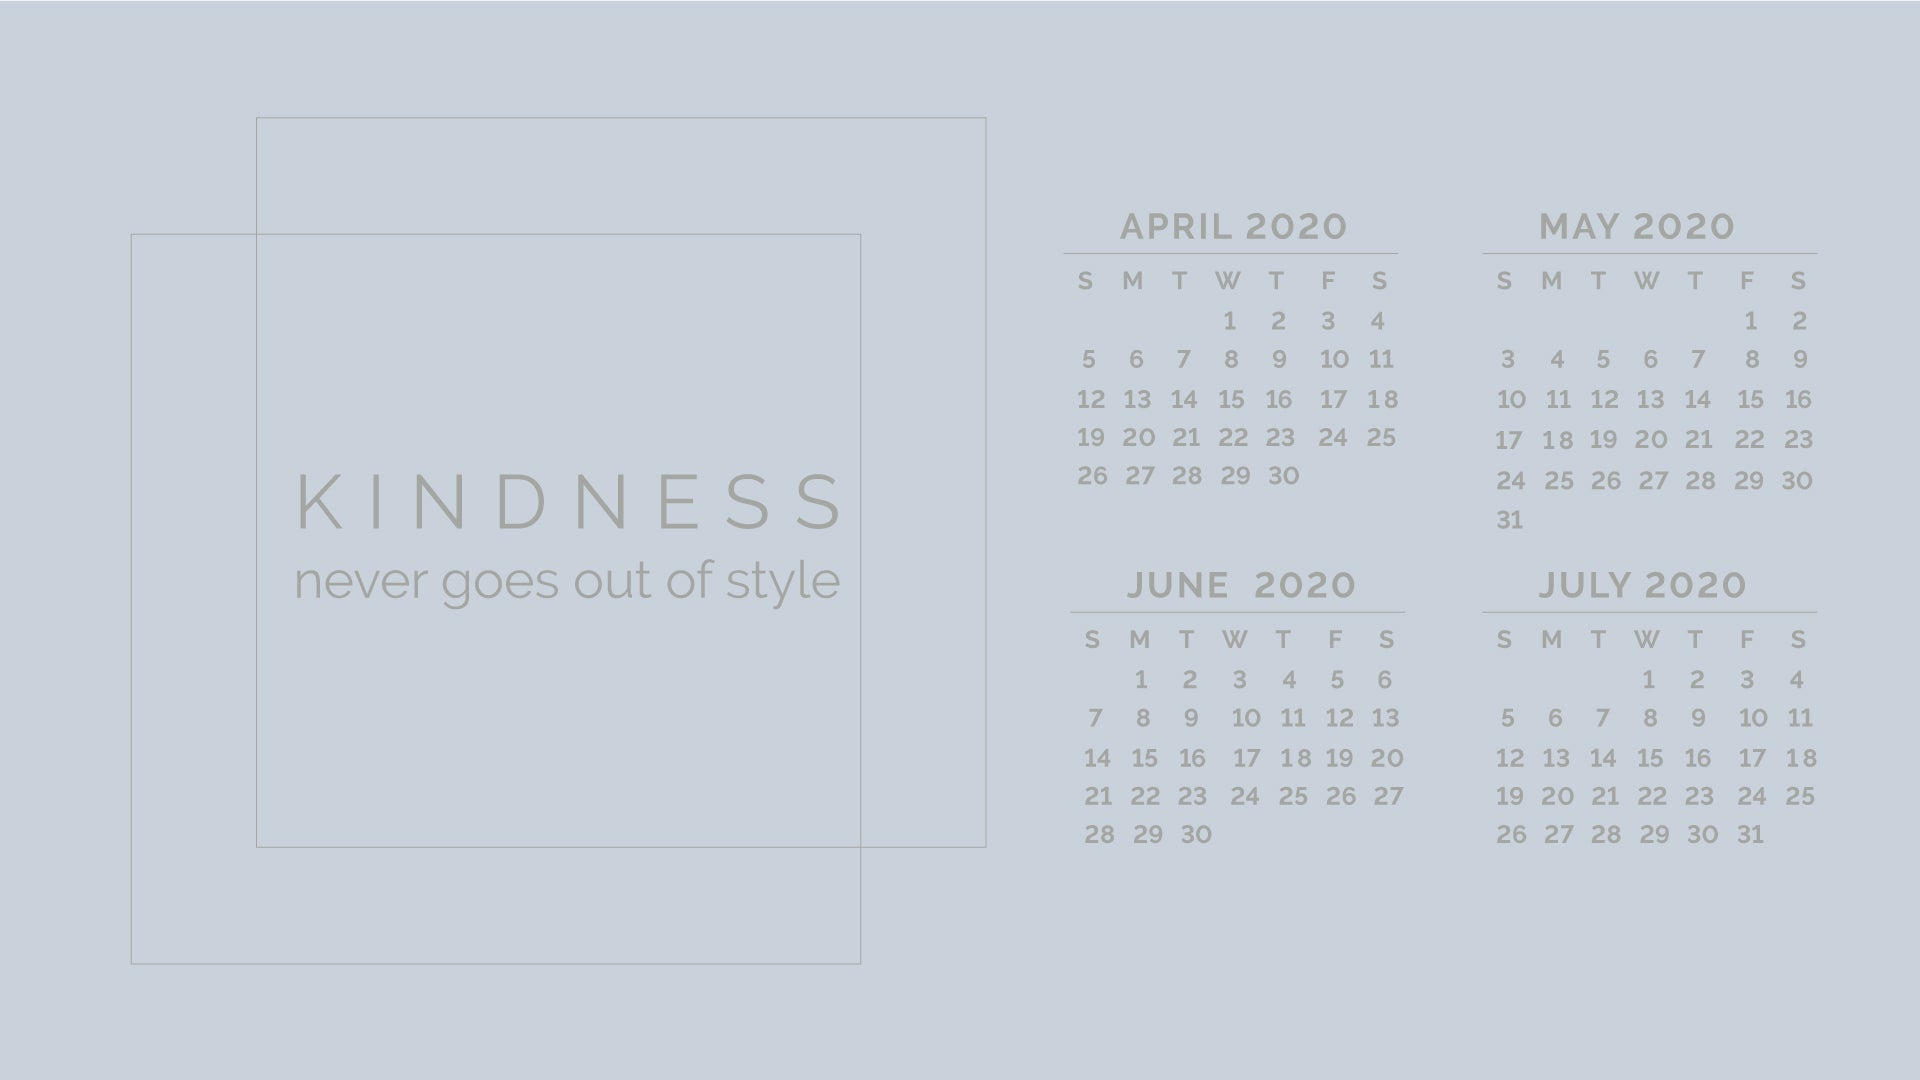 kindness never goes out of style. uplifting quotes desktop backgrounds with april 2020 calendar